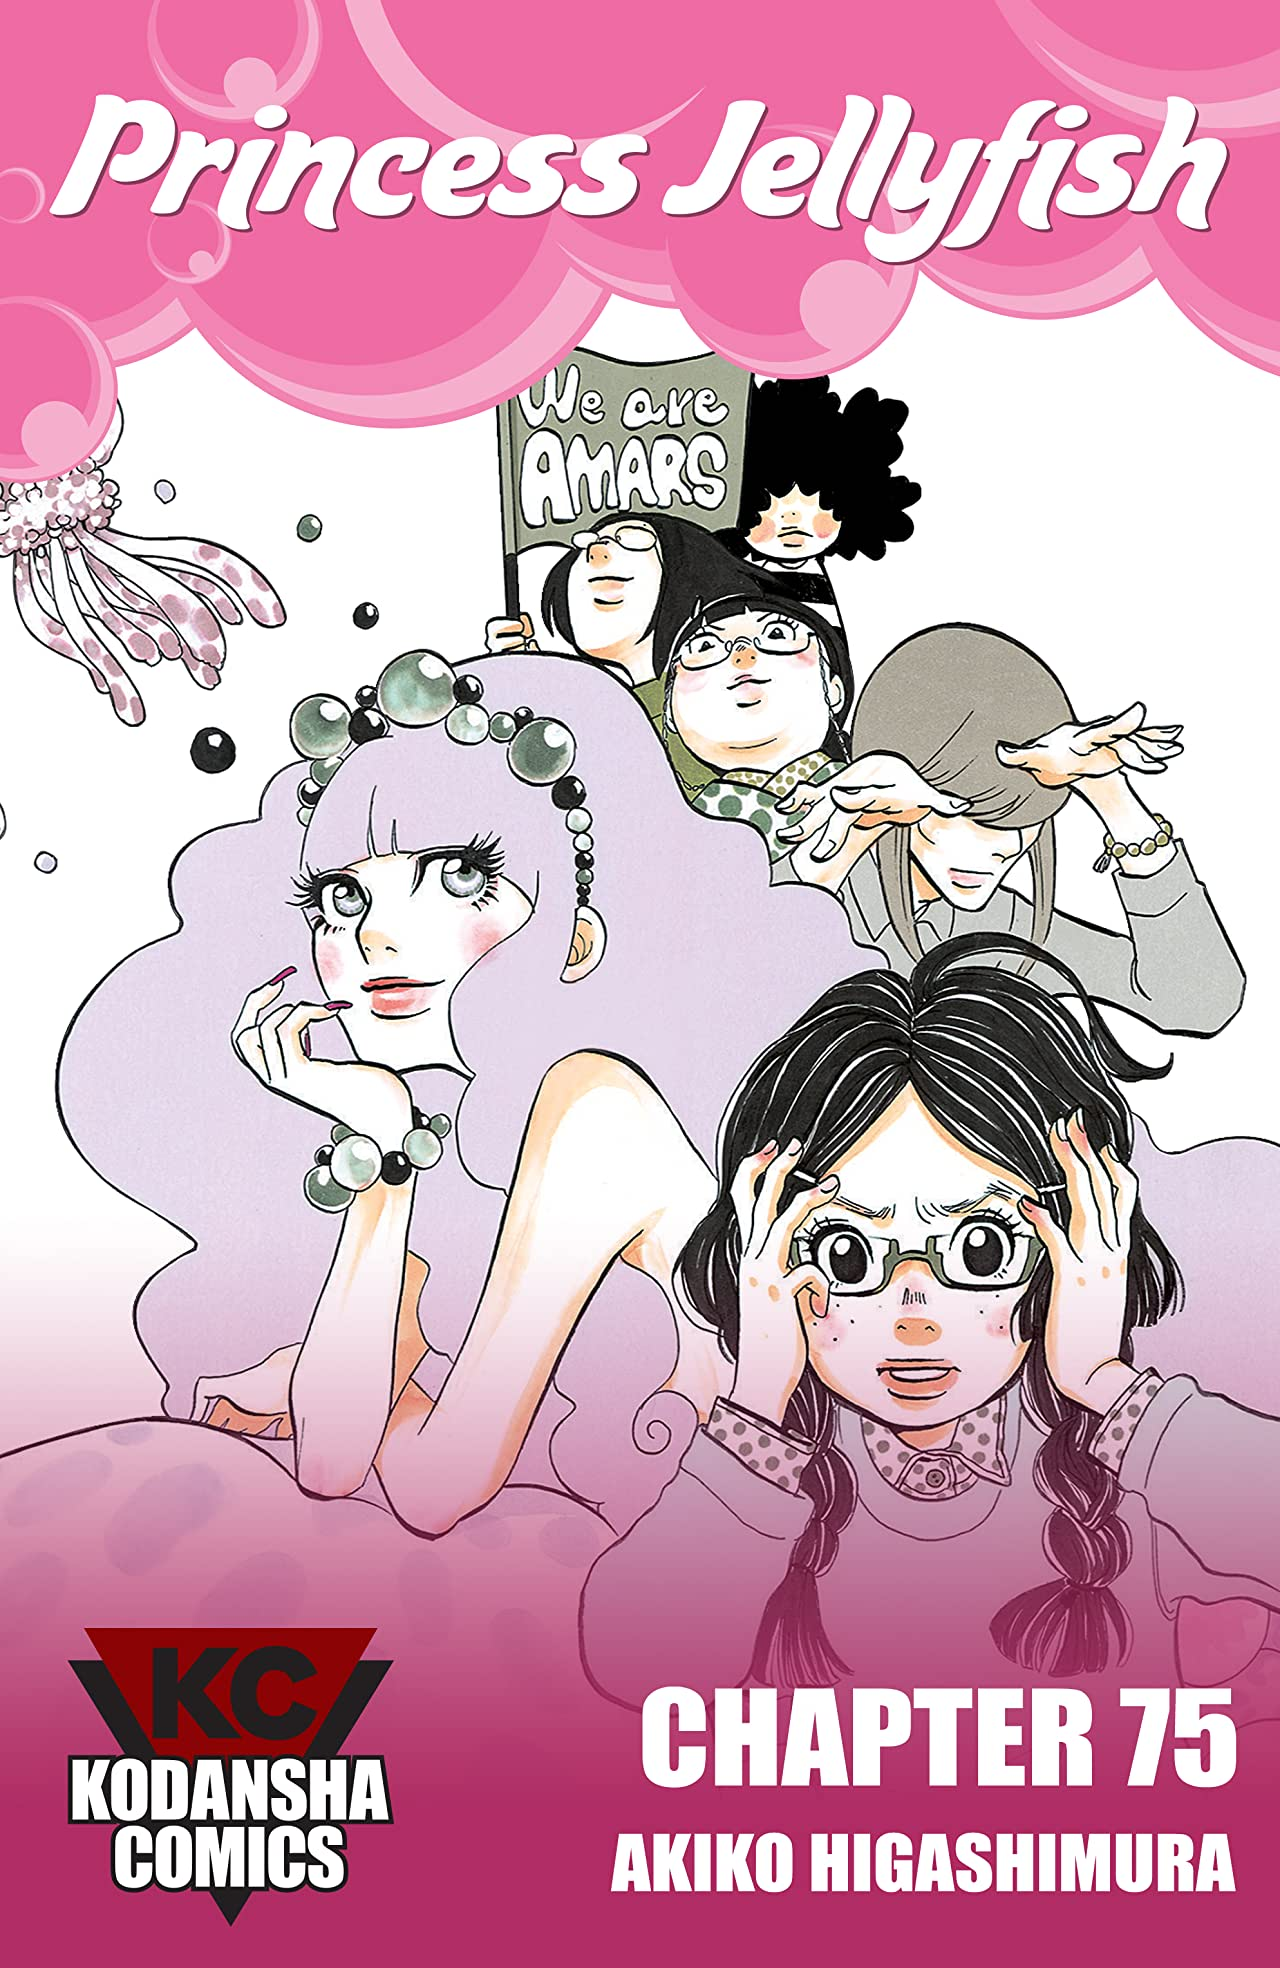 Princess Jellyfish #75